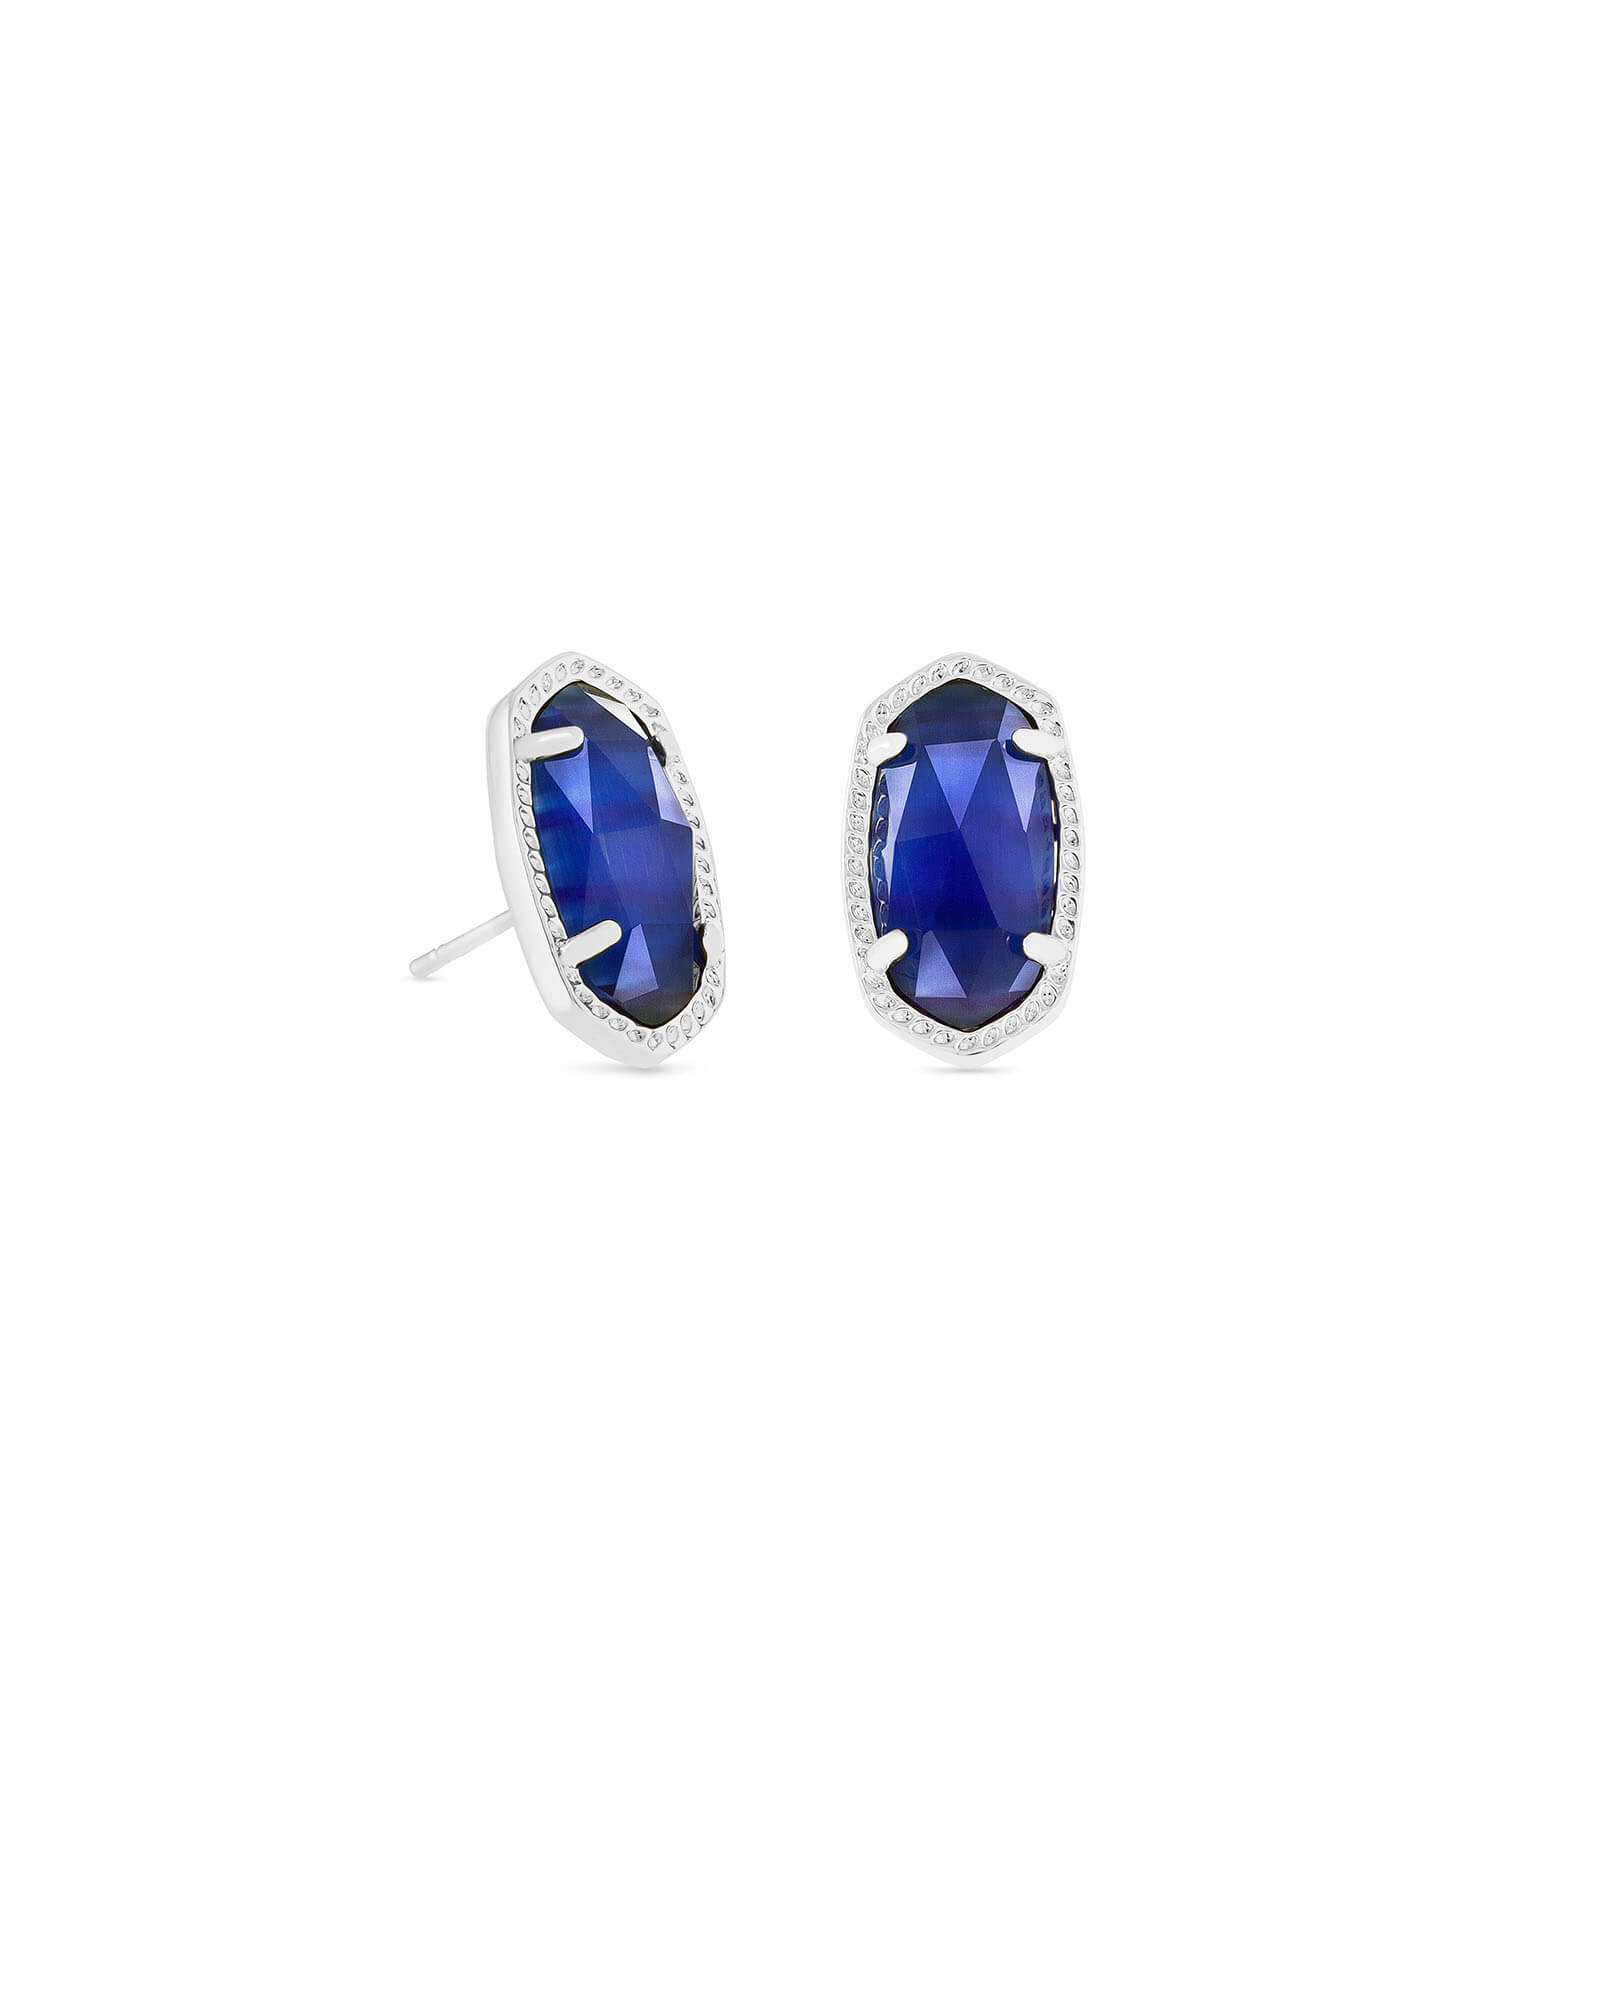 Ellie Silver Stud Earrings in Cobalt Cats Eye